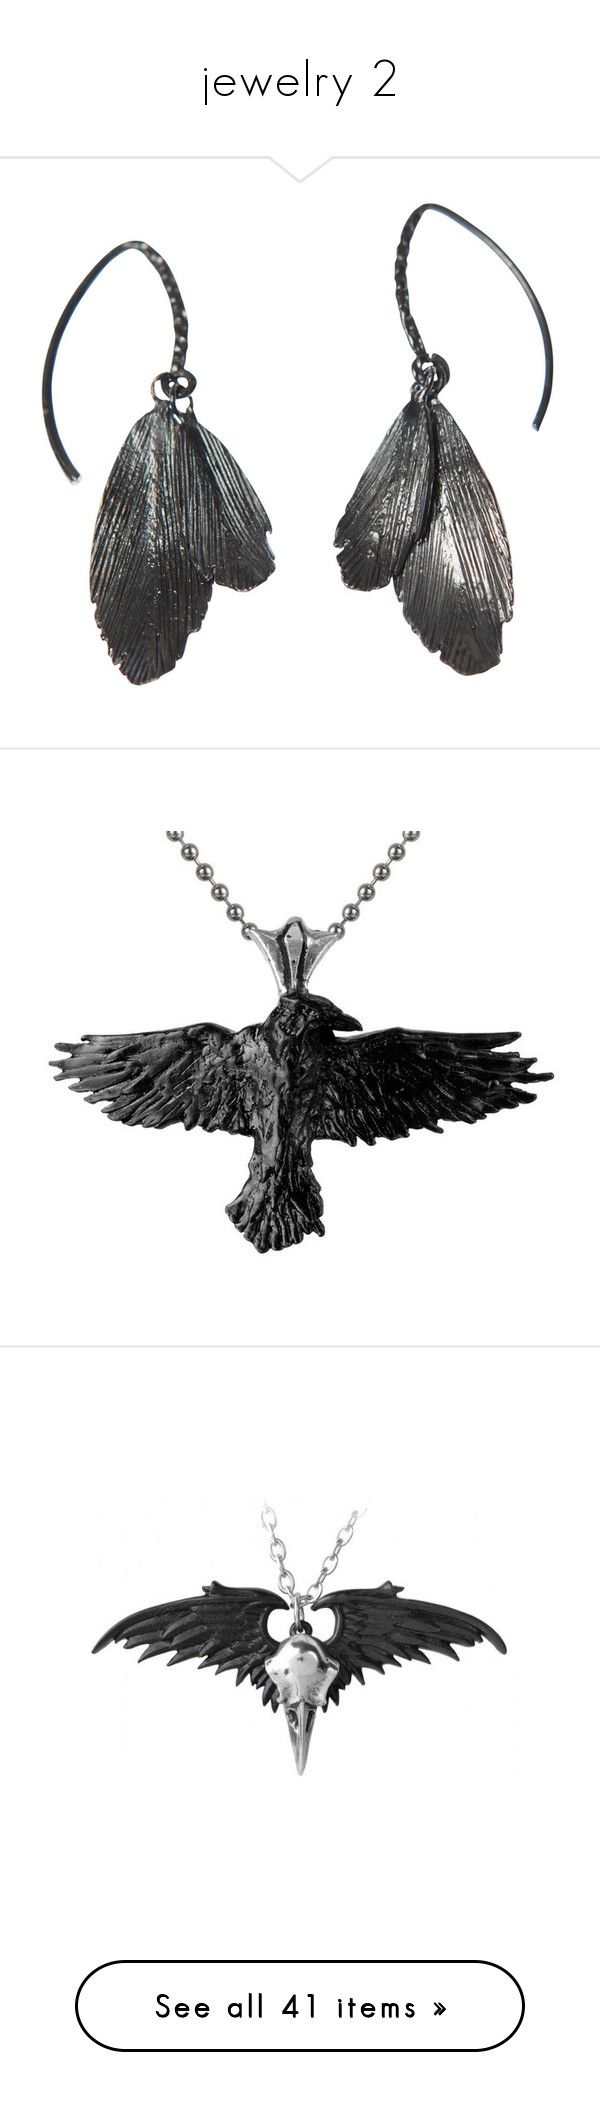 """""""jewelry 2"""" by valaquenta ❤ liked on Polyvore featuring jewelry, earrings, black, ravens, oxidized silver jewelry, magnet earrings, claw earrings, oxidized earrings, silver earrings and necklaces"""